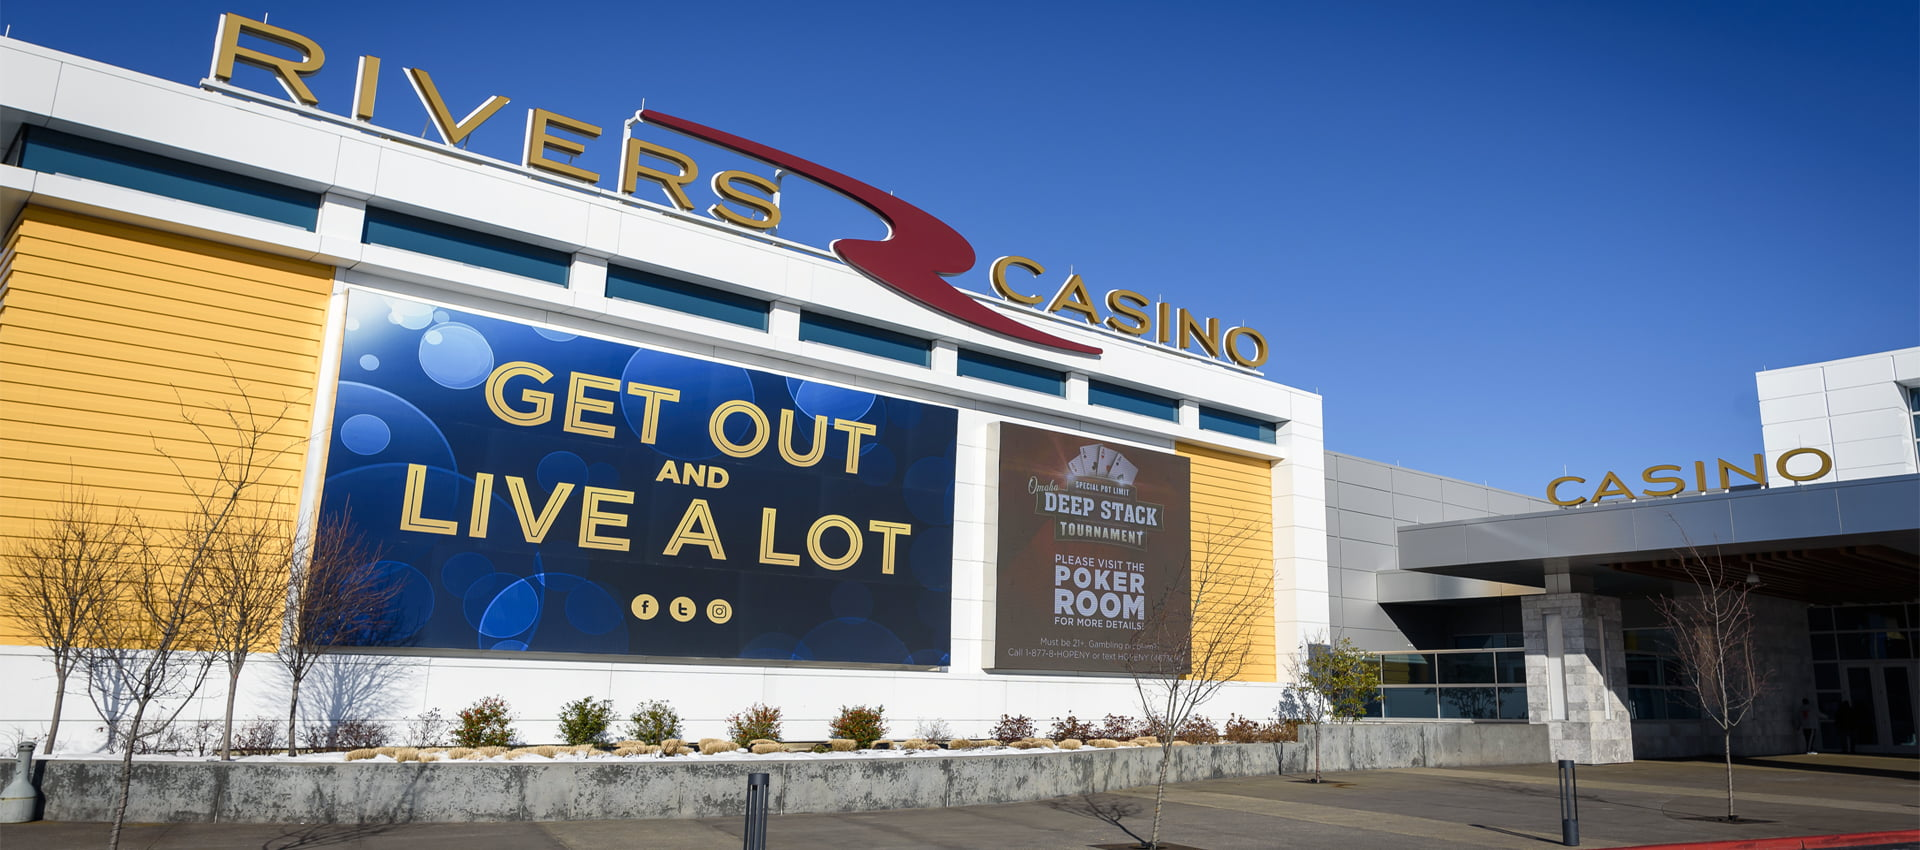 Rivers Casino & Resort | Photo Courtesy of Andrew Shinn